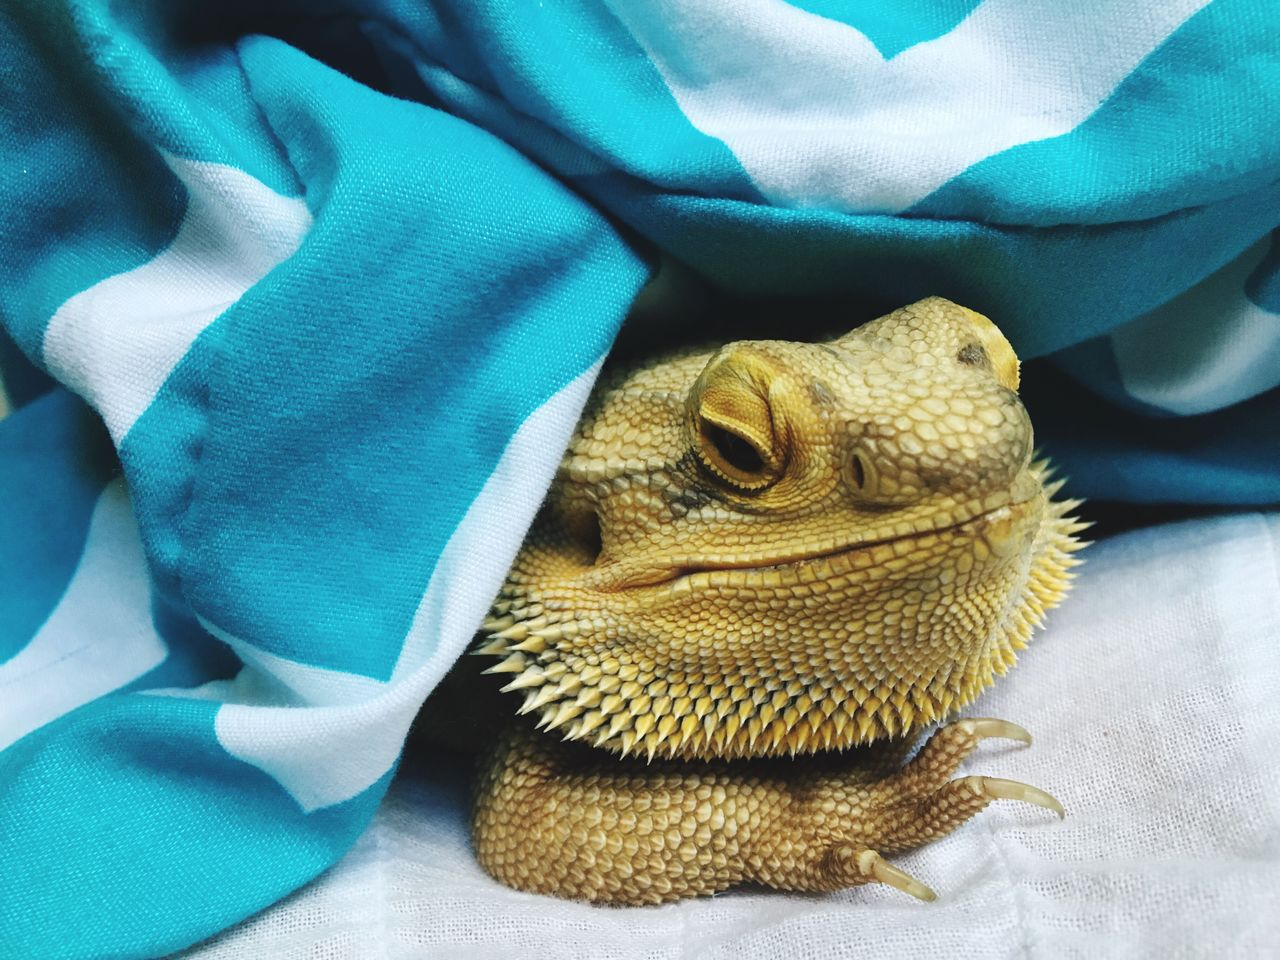 EyeEm Selects Bearded Dragon Waking Up Reptile Close-up One Animal Animal Themes No People Indoors  Fabric